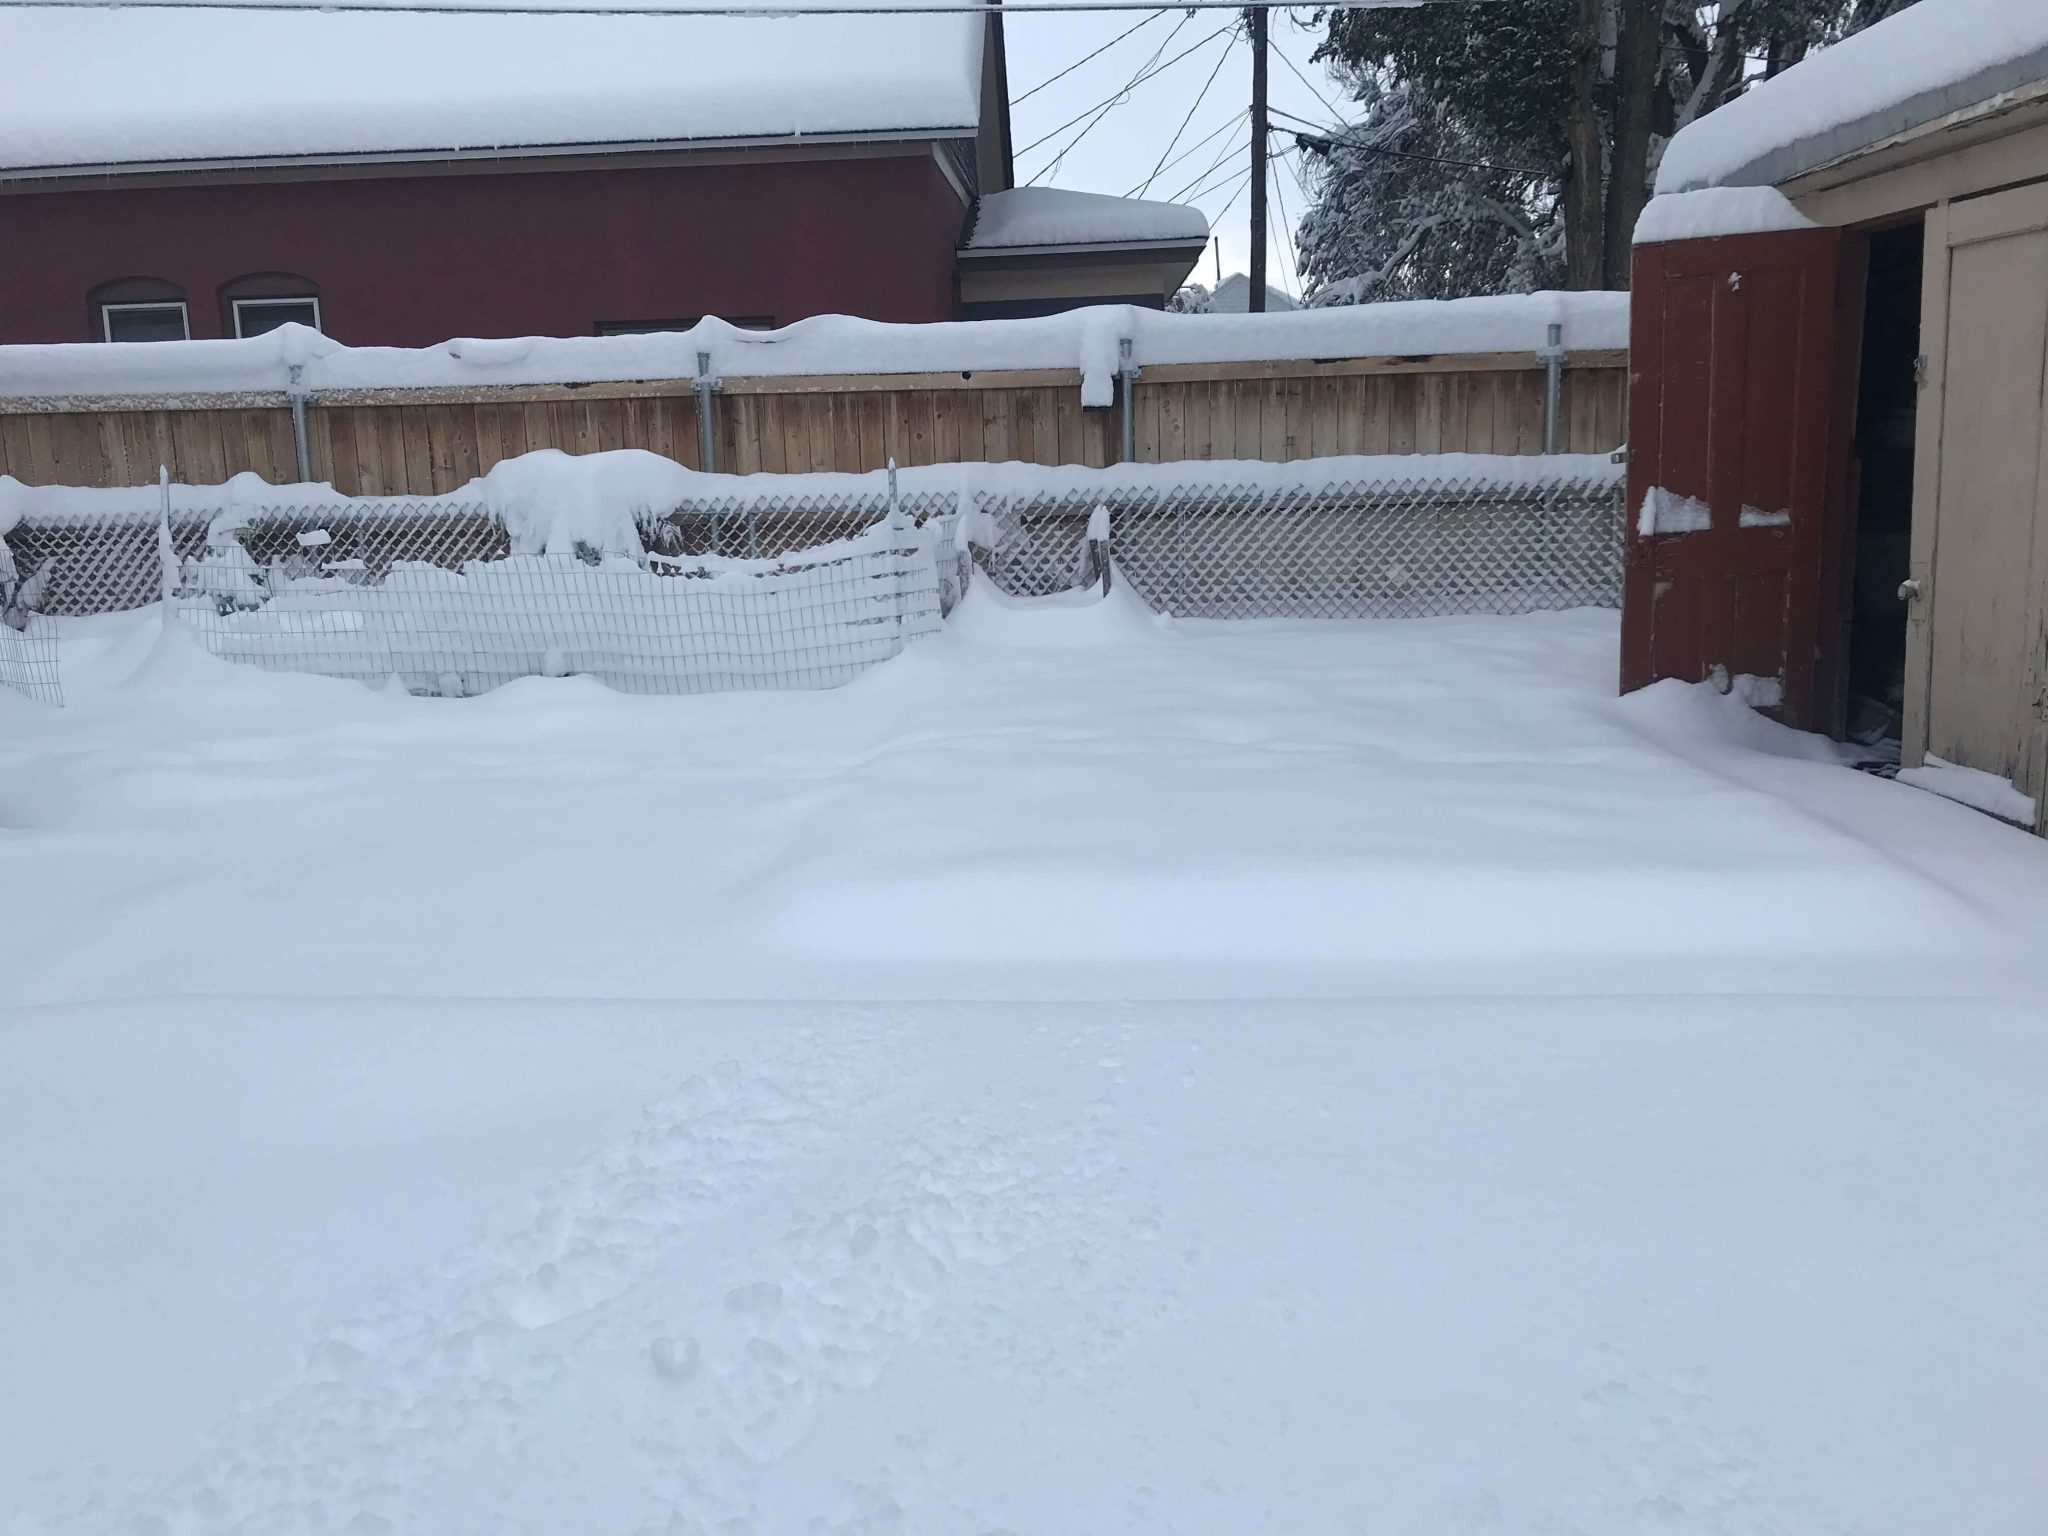 Record breaking snowfall in Alamosa, CO on September 9, 2020